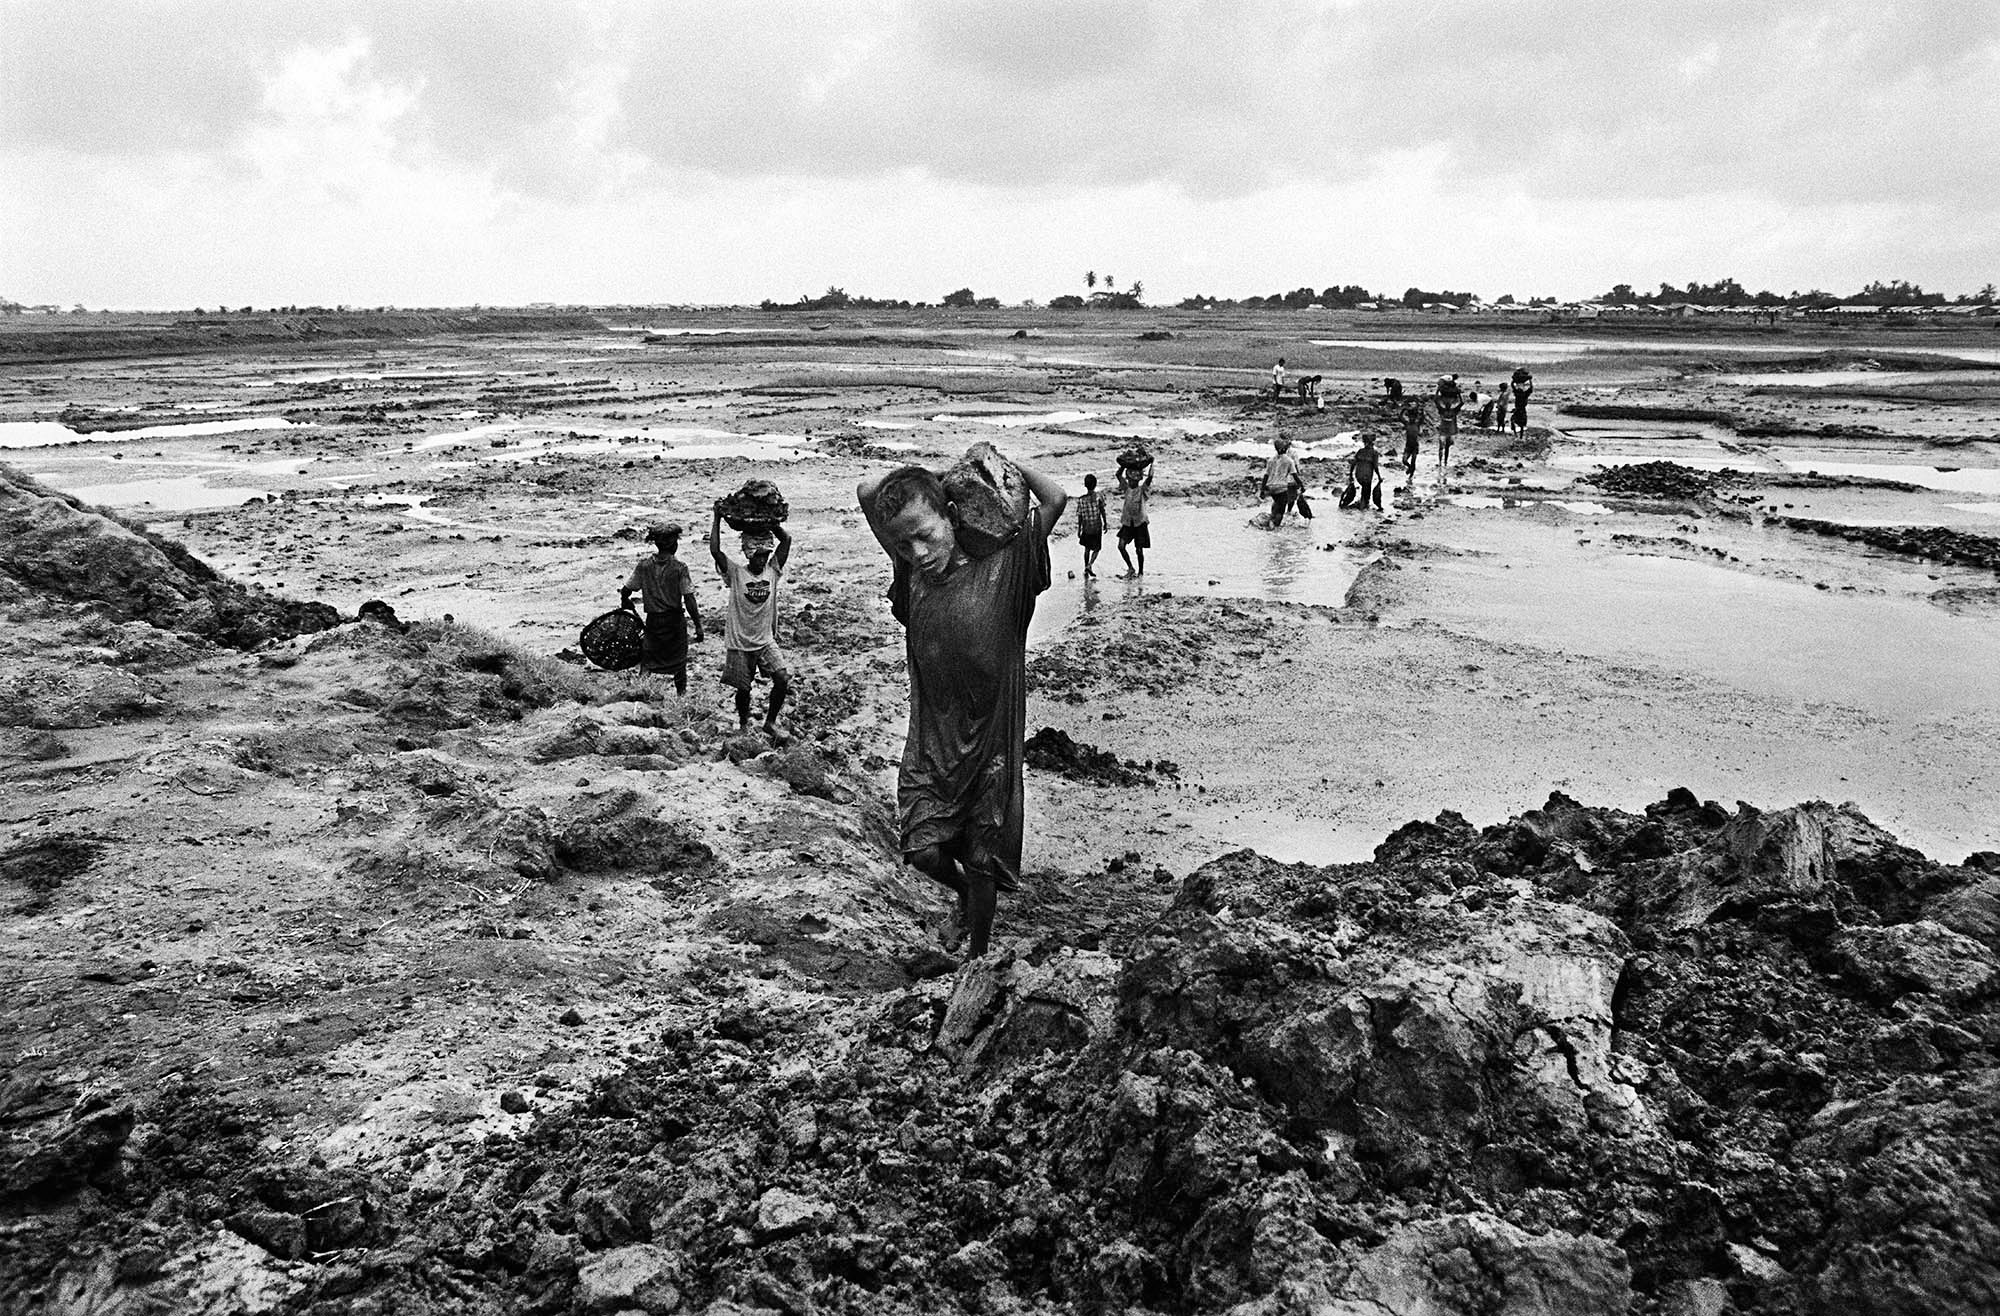 Rohingya in the IDP camps say they feel an entire generation of Rohingya children will not have access to schools and an education. Most children like 7-year-old Nur, who hauls mud at a worksite near one of the IDP camps, have never been to school.